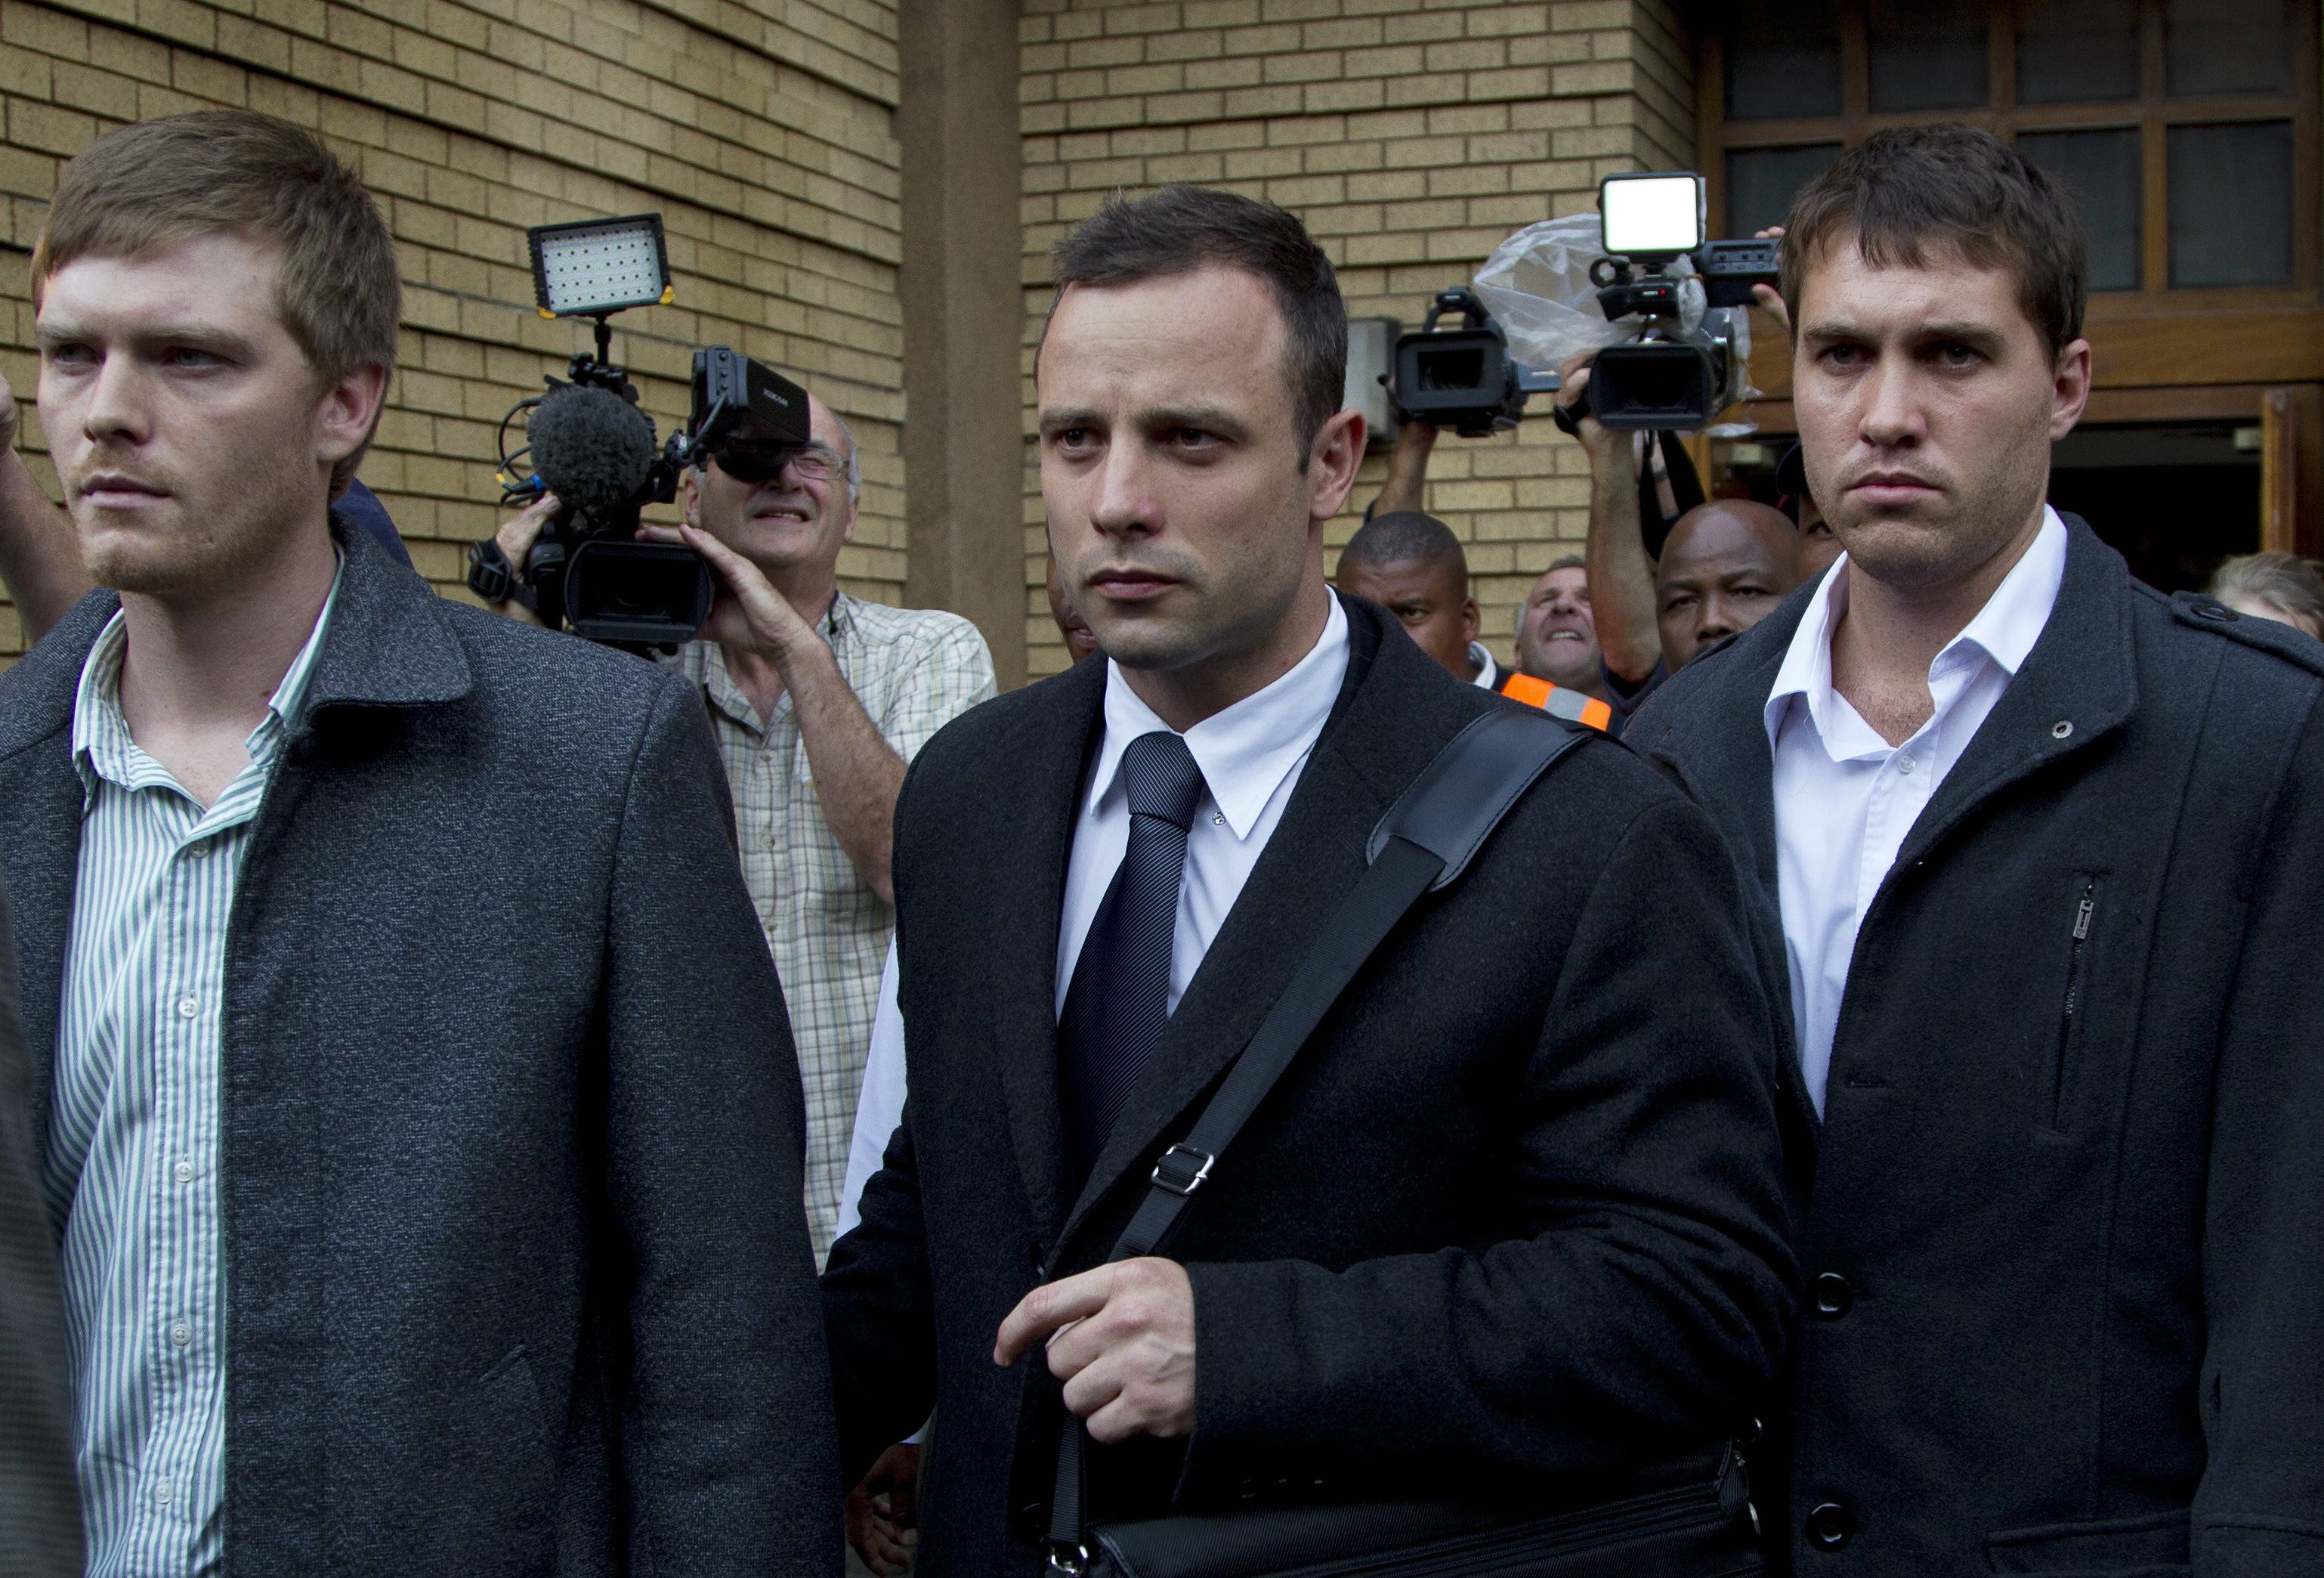 Oscar Pistorius, center, with unidentified men leaves the high court in Pretoria, South Africa, Tuesday. Pistorius is charged with murder for the shooting death of his girlfriend, Reeva Steenkamp, on Valentines Day in 2013.